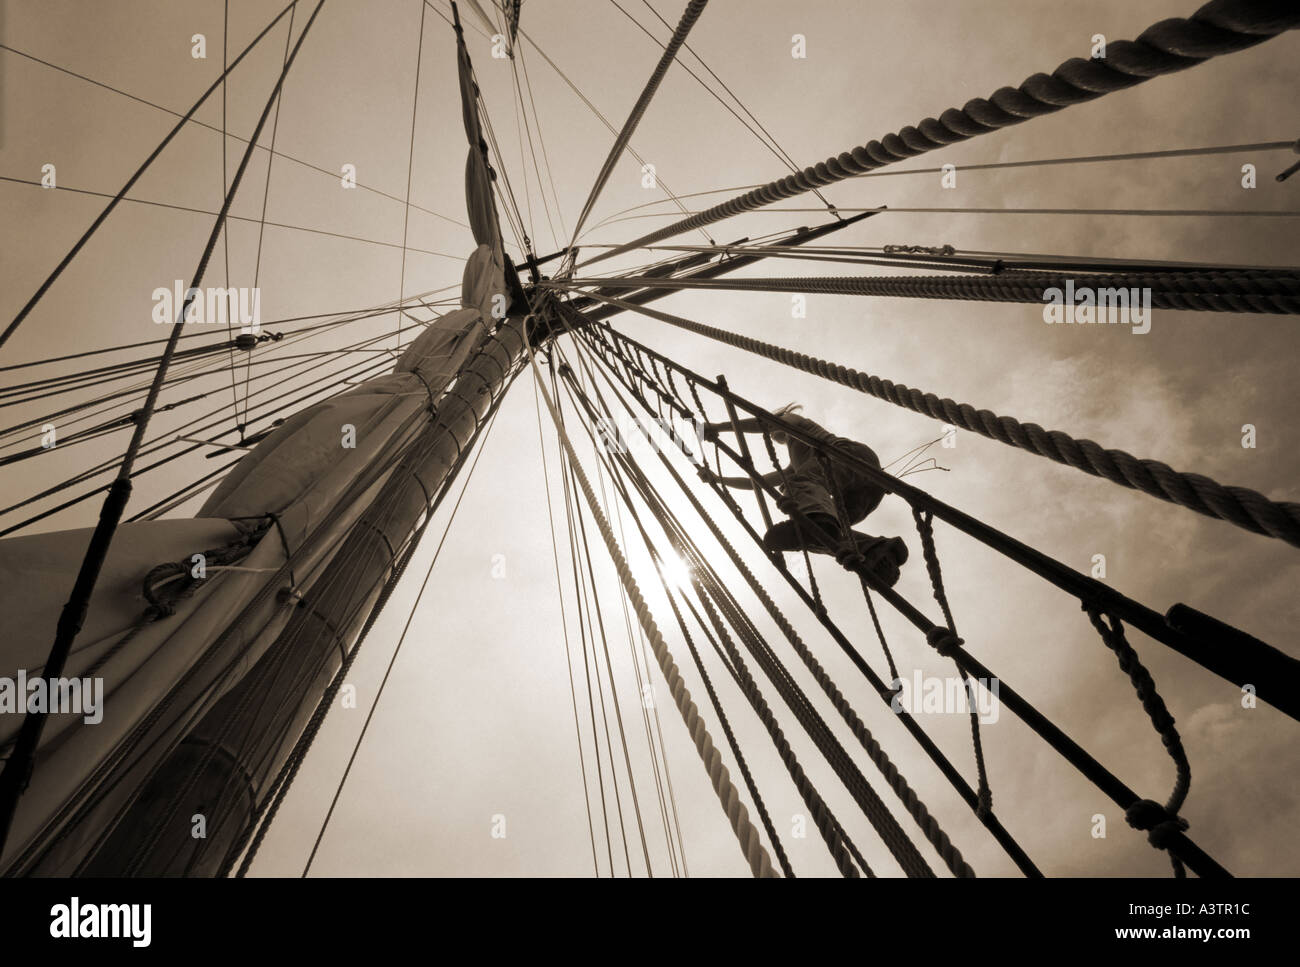 Photo of a Man climbing the mast of a tall sailing ship with sunlight sepia toned version - Stock Image